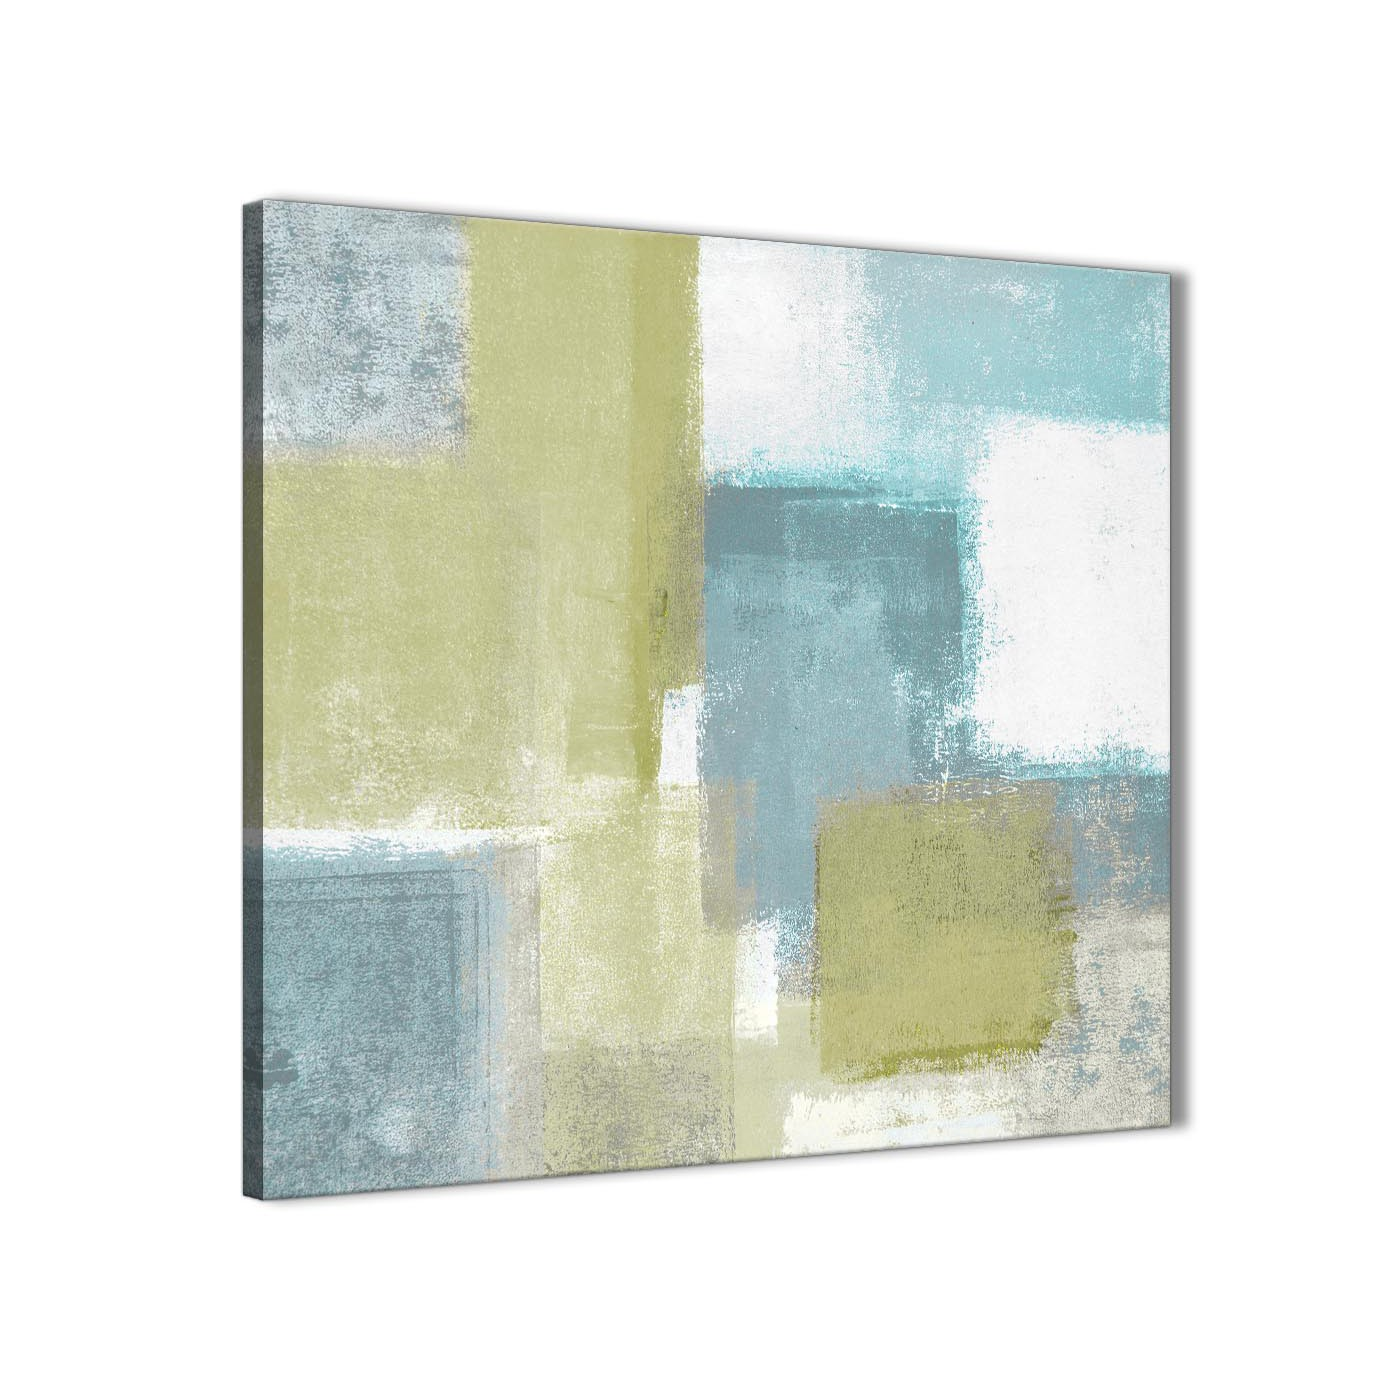 Oversized lime green teal abstract painting canvas wall art print modern 79cm square for your kitchen display gallery item 1